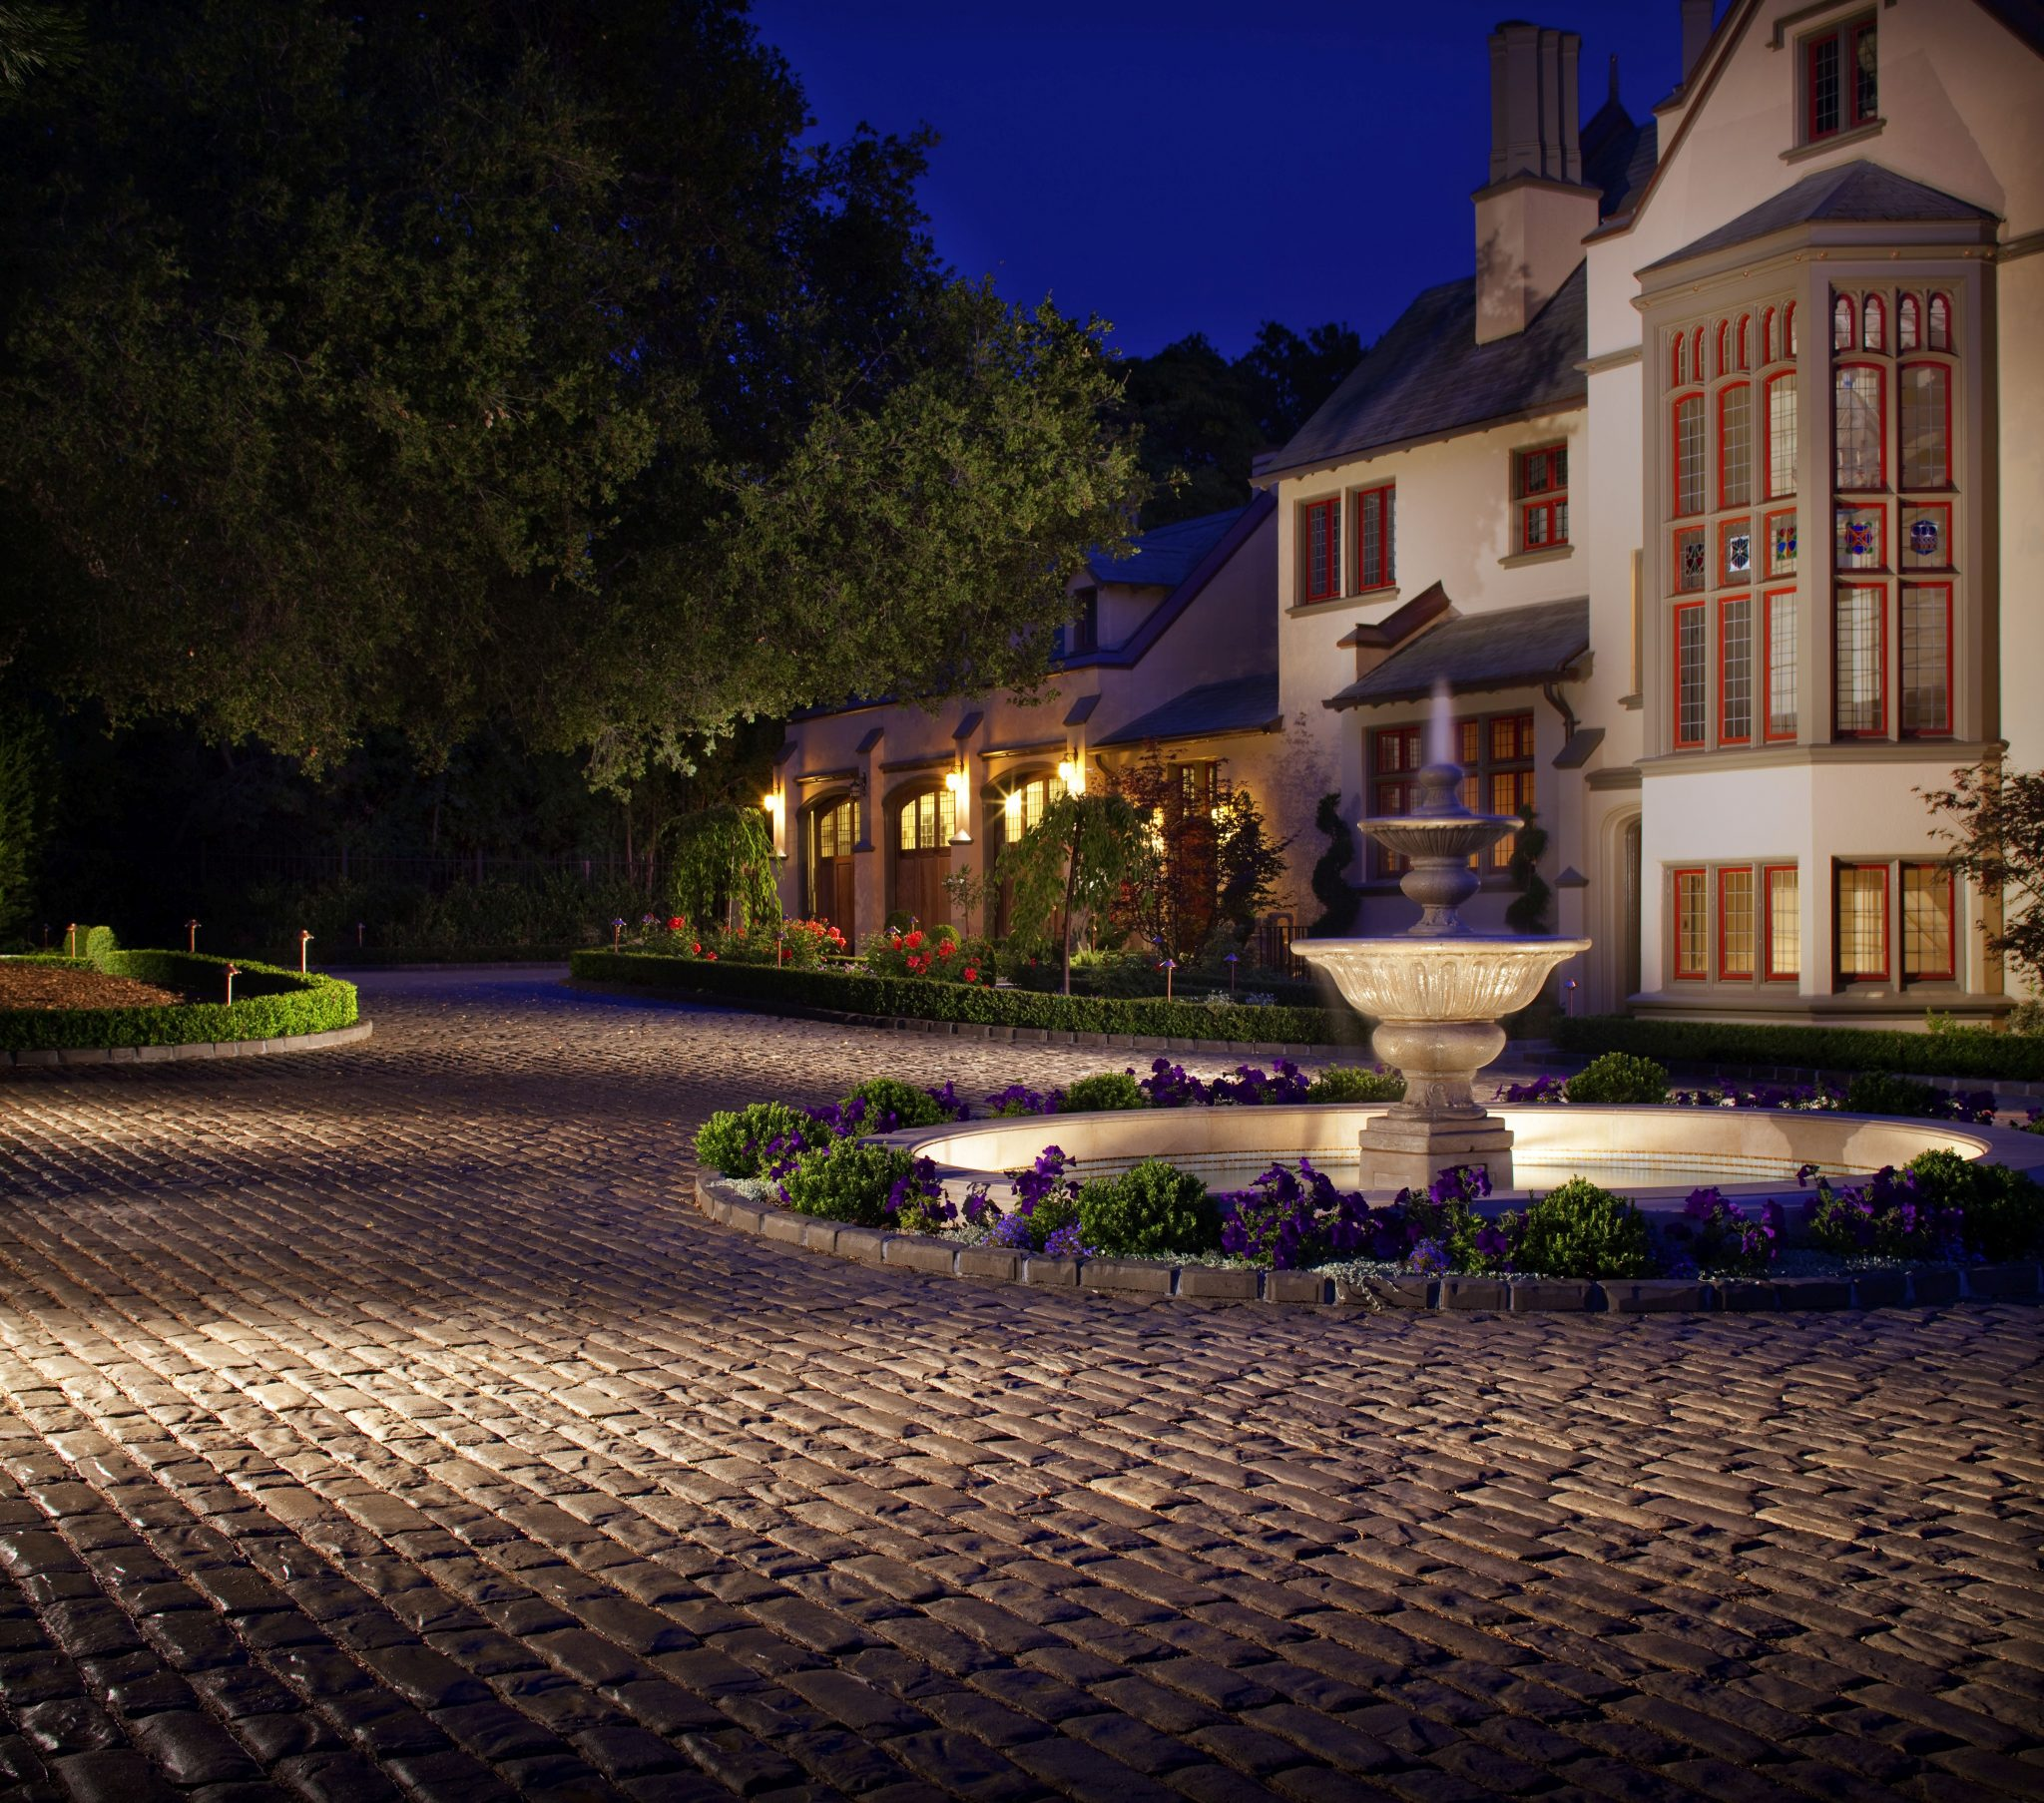 Landscape Lighting Guide: Driveway Lights Guide: Outdoor Lighting Ideas + Tips